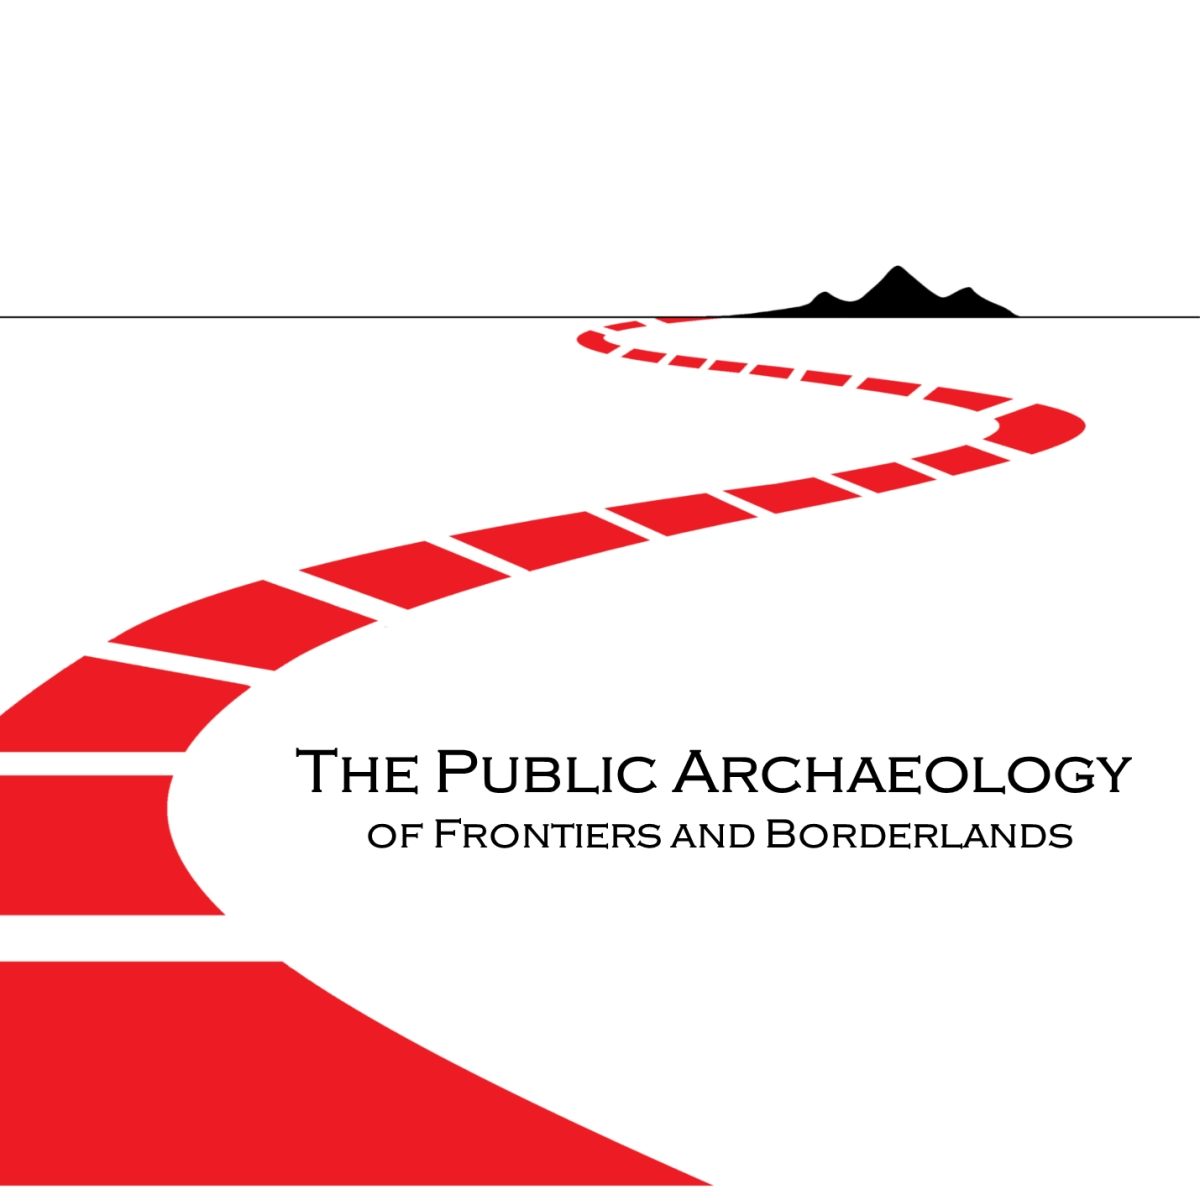 The Public Archaeology of Frontiers and Borderlands